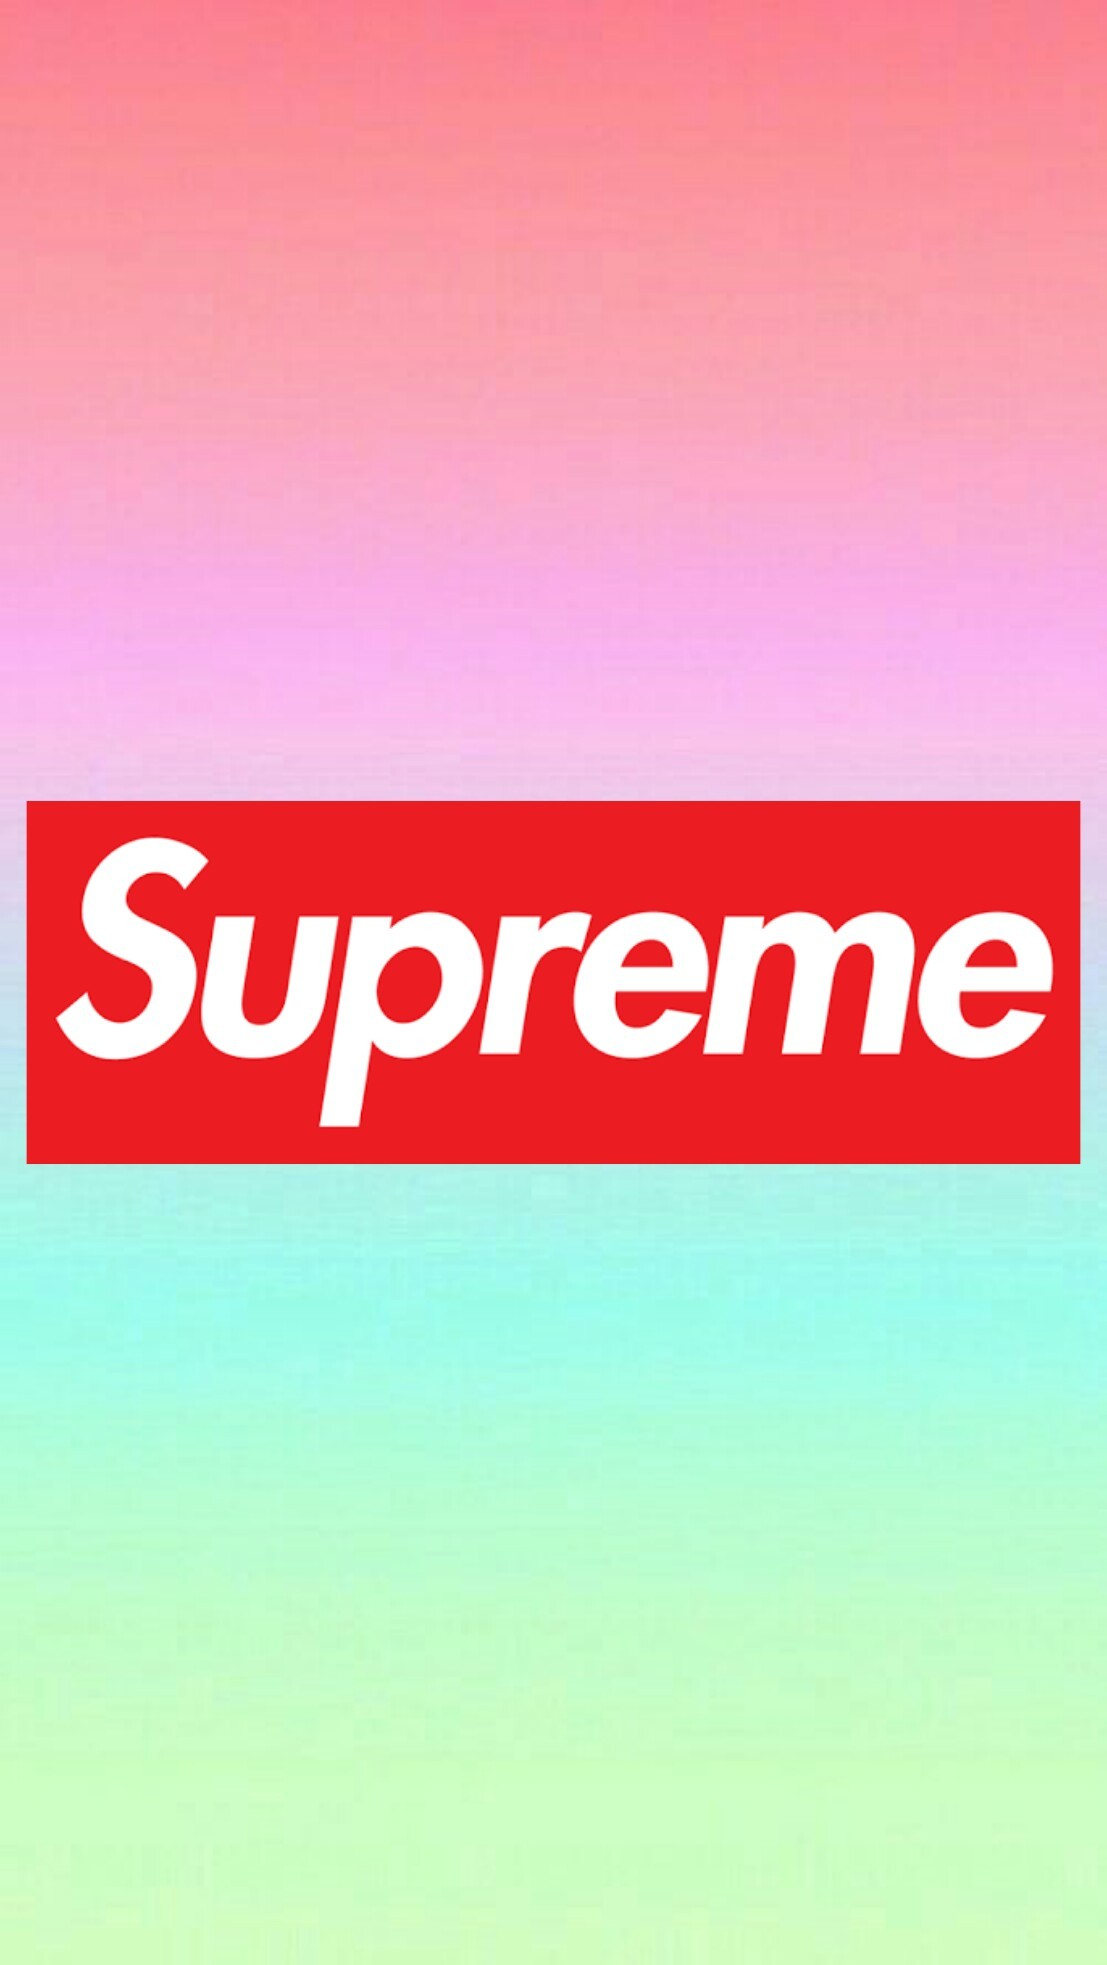 Free Download Supreme Logo Wallpapers 106 Images In